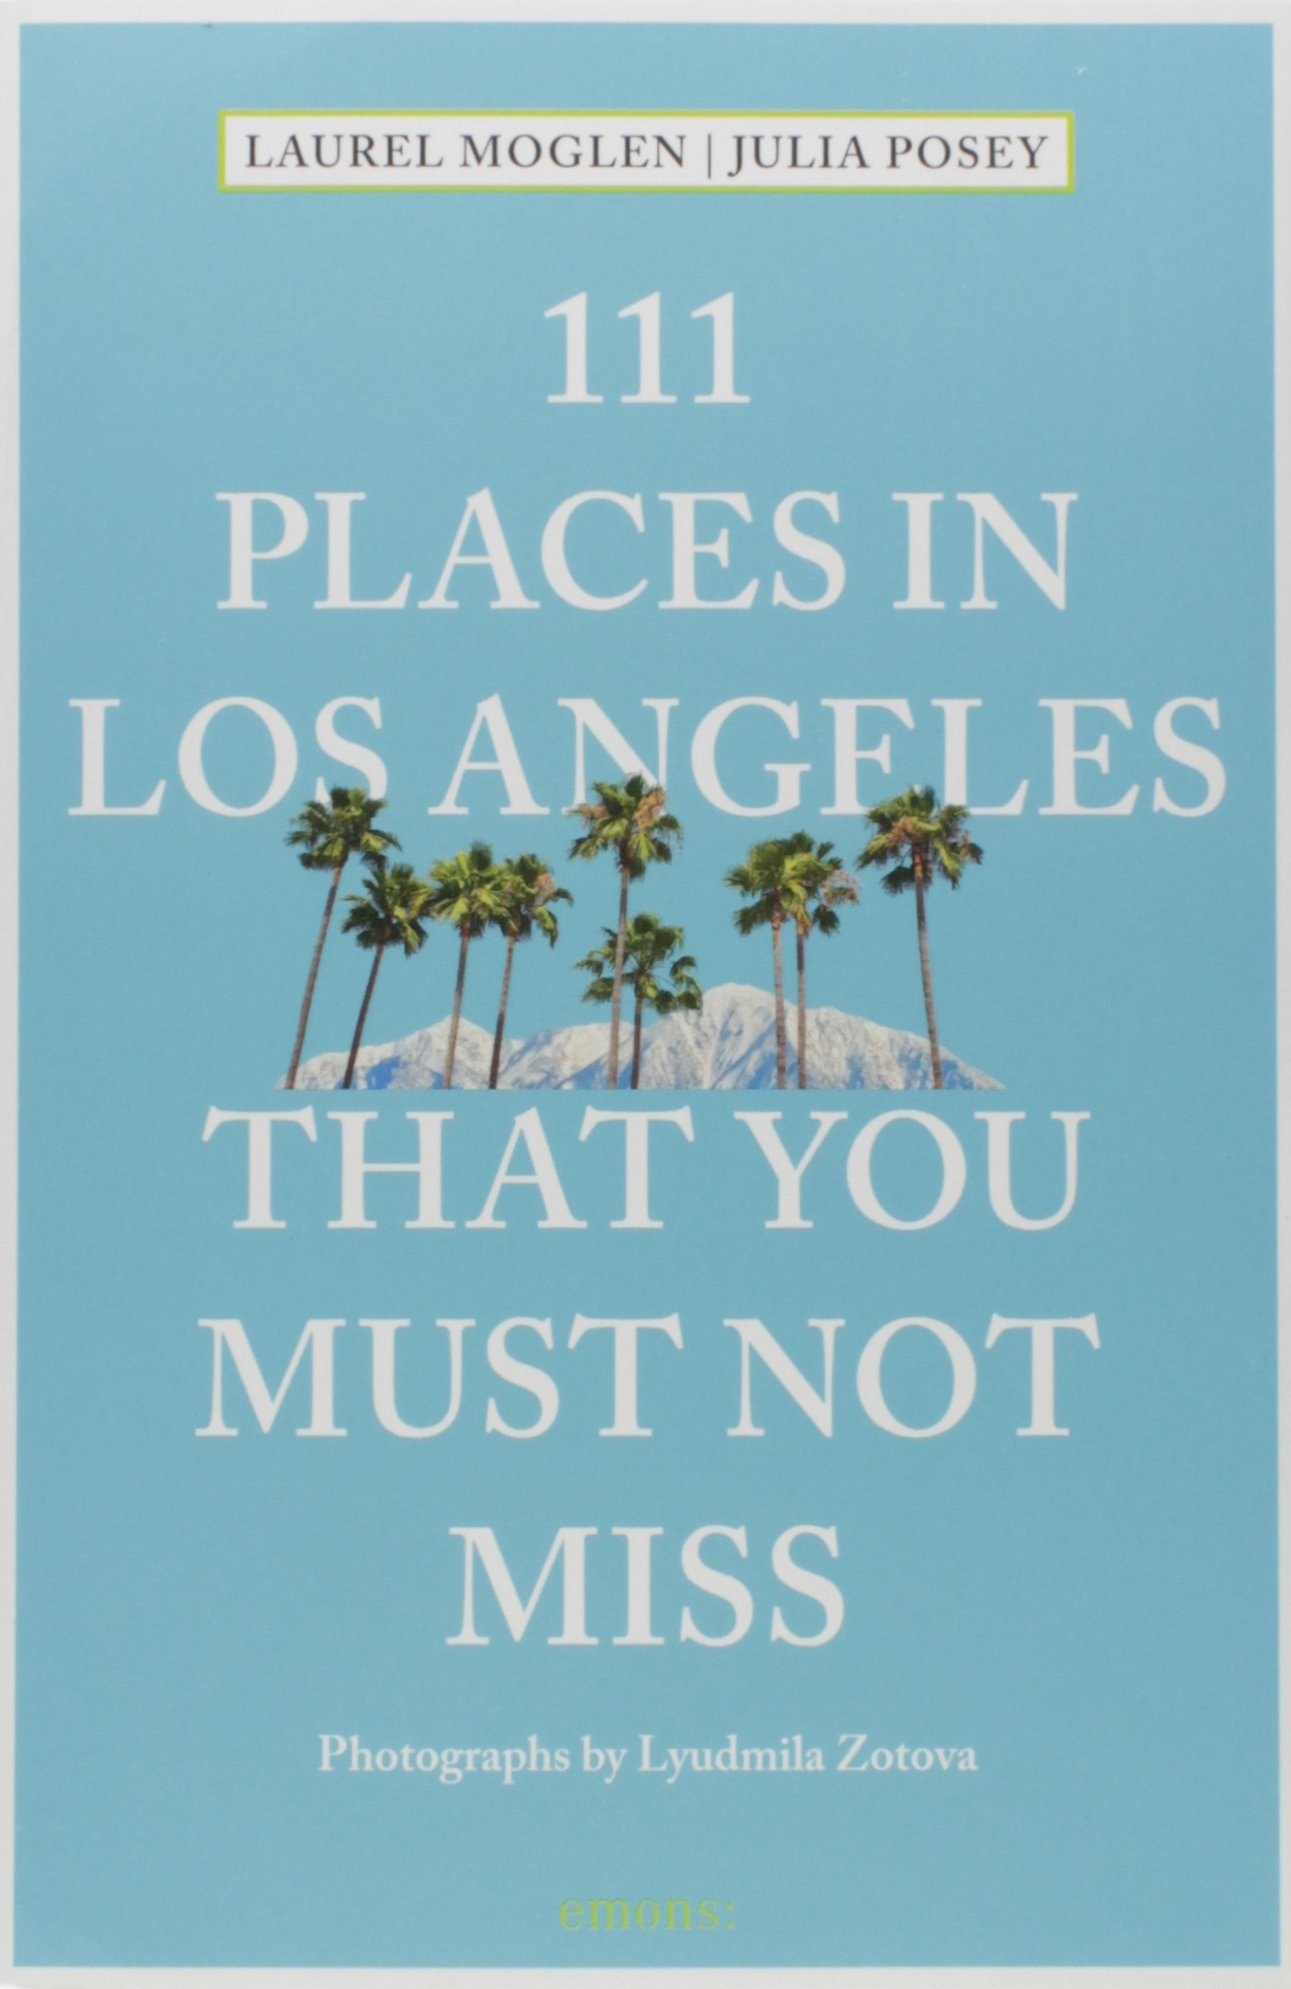 111 Places in Los Angeles That You Must Not Miss (111 Places in .... That You Must Not Miss) PDF ePub fb2 ebook